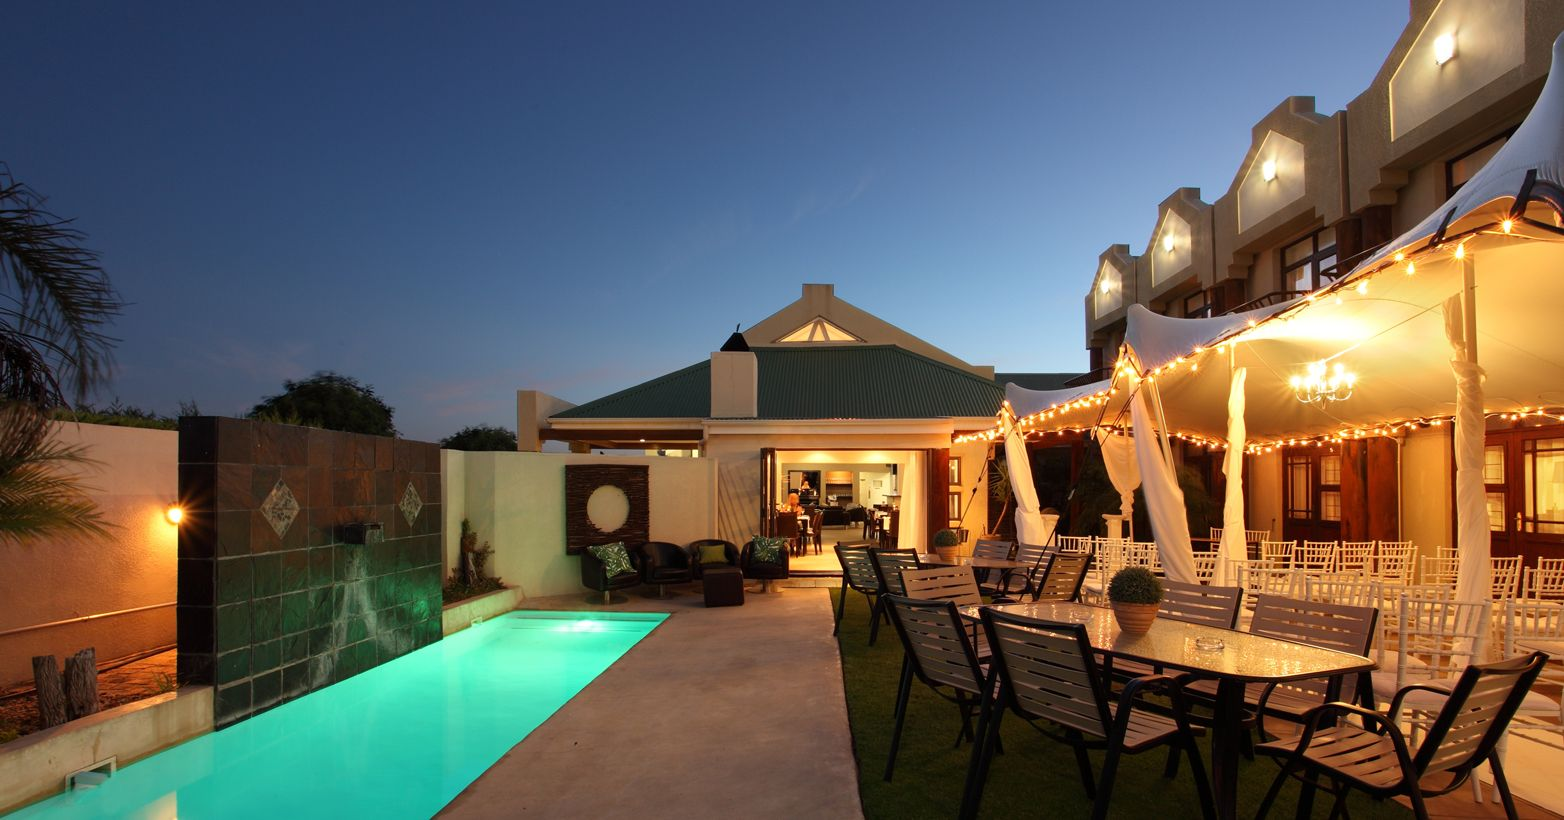 The Four Star Feathers Boutique Hotel Is An Award Winning Situated In Beautiful Suburb Durbanville Of Cape Town South Africa